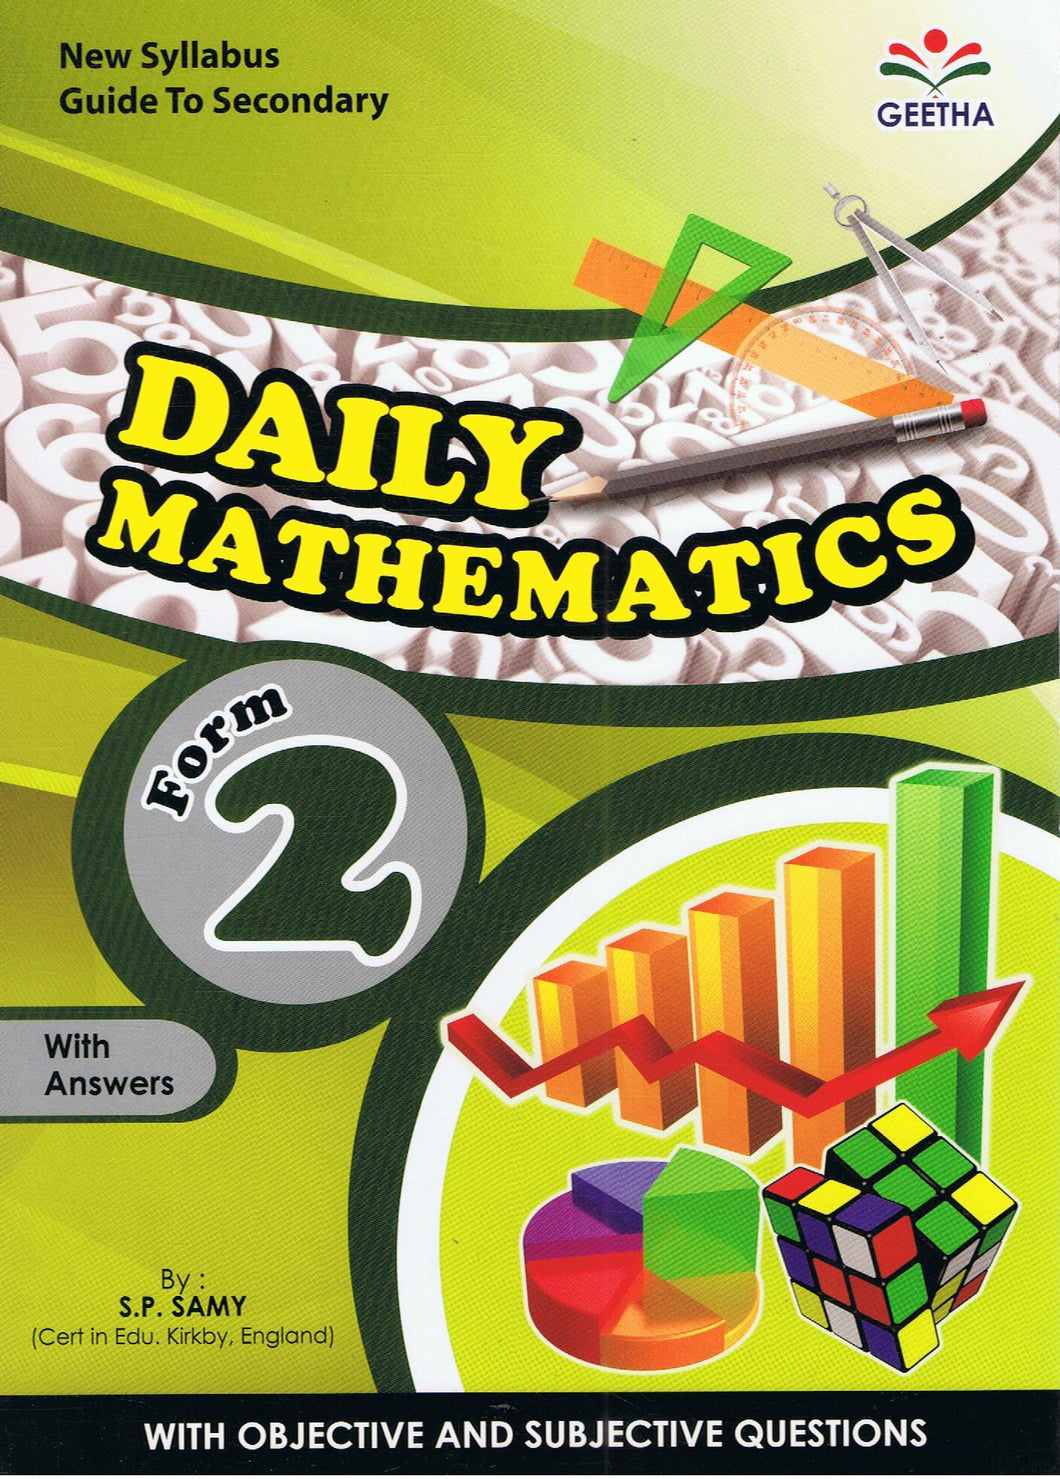 Geetha-Daily Mathematics Form 2-9789839594706-BukuDBP.com